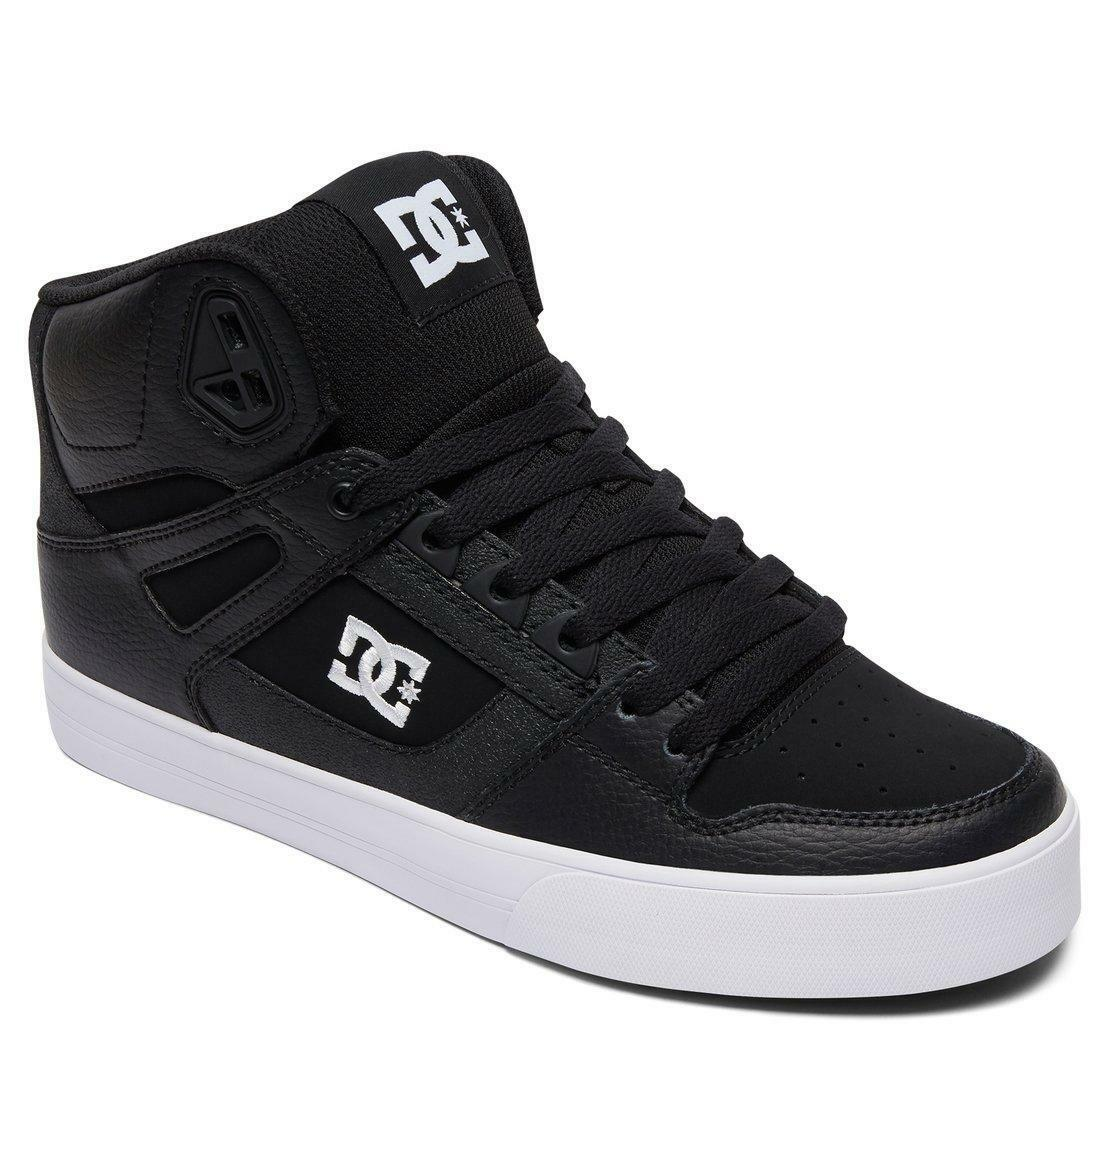 DC SHOES MENS HI TOP BOOTS.PURE REAL LEATHER HIGH SKATE TRAINERS SHOES 8S 43 BKW